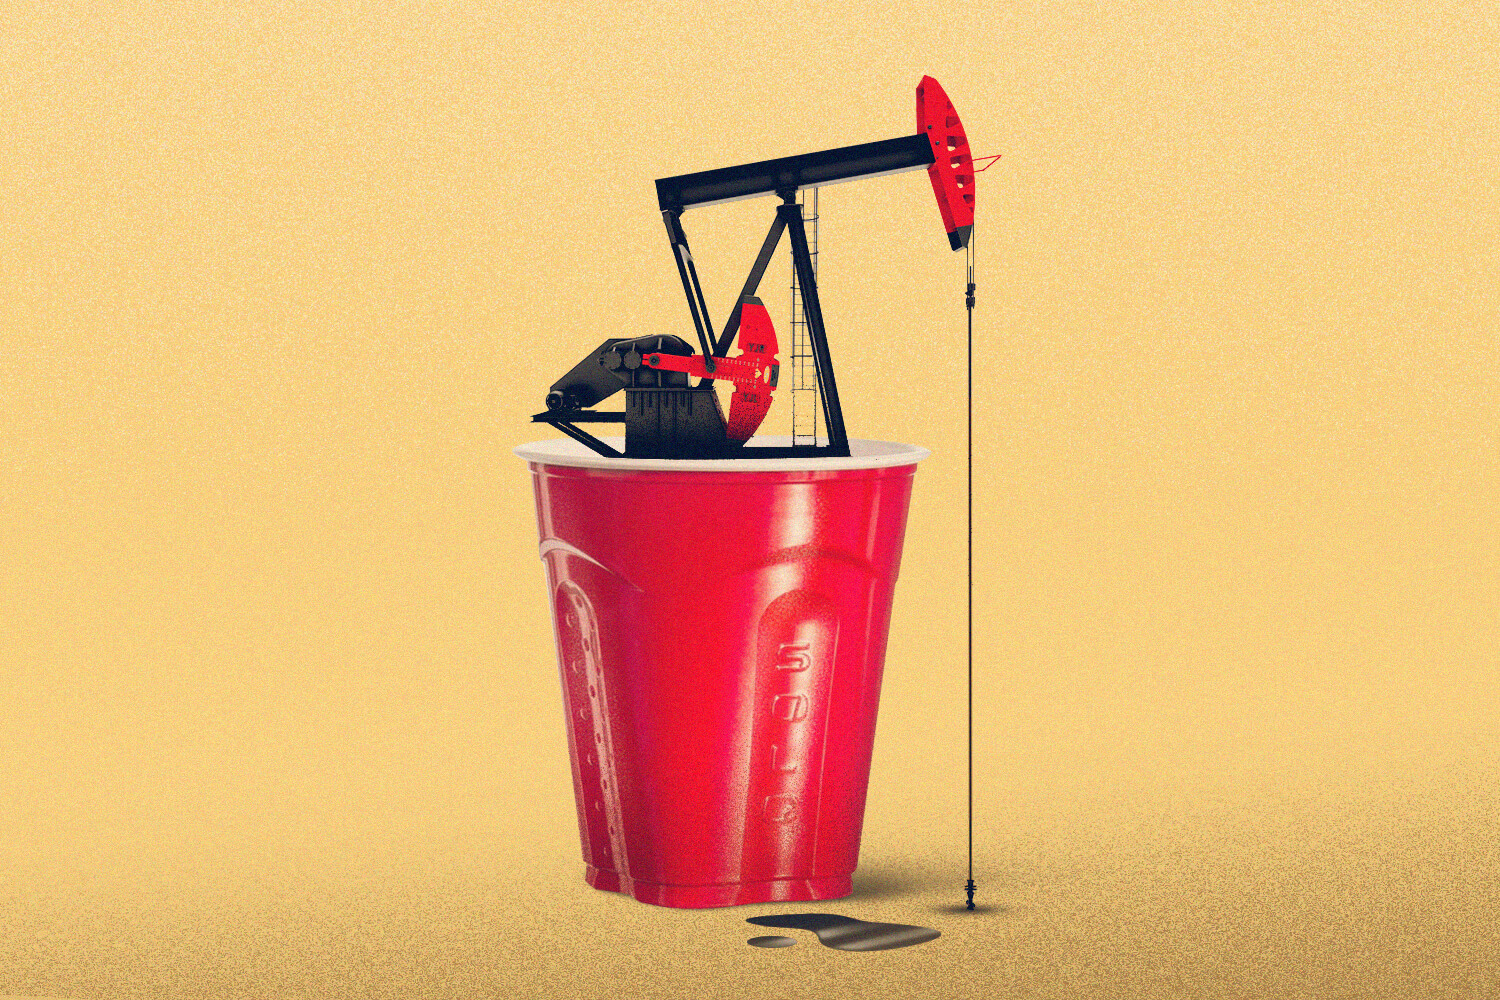 Fracking fueled the recent U.S. oil boom  Francis Scialabba